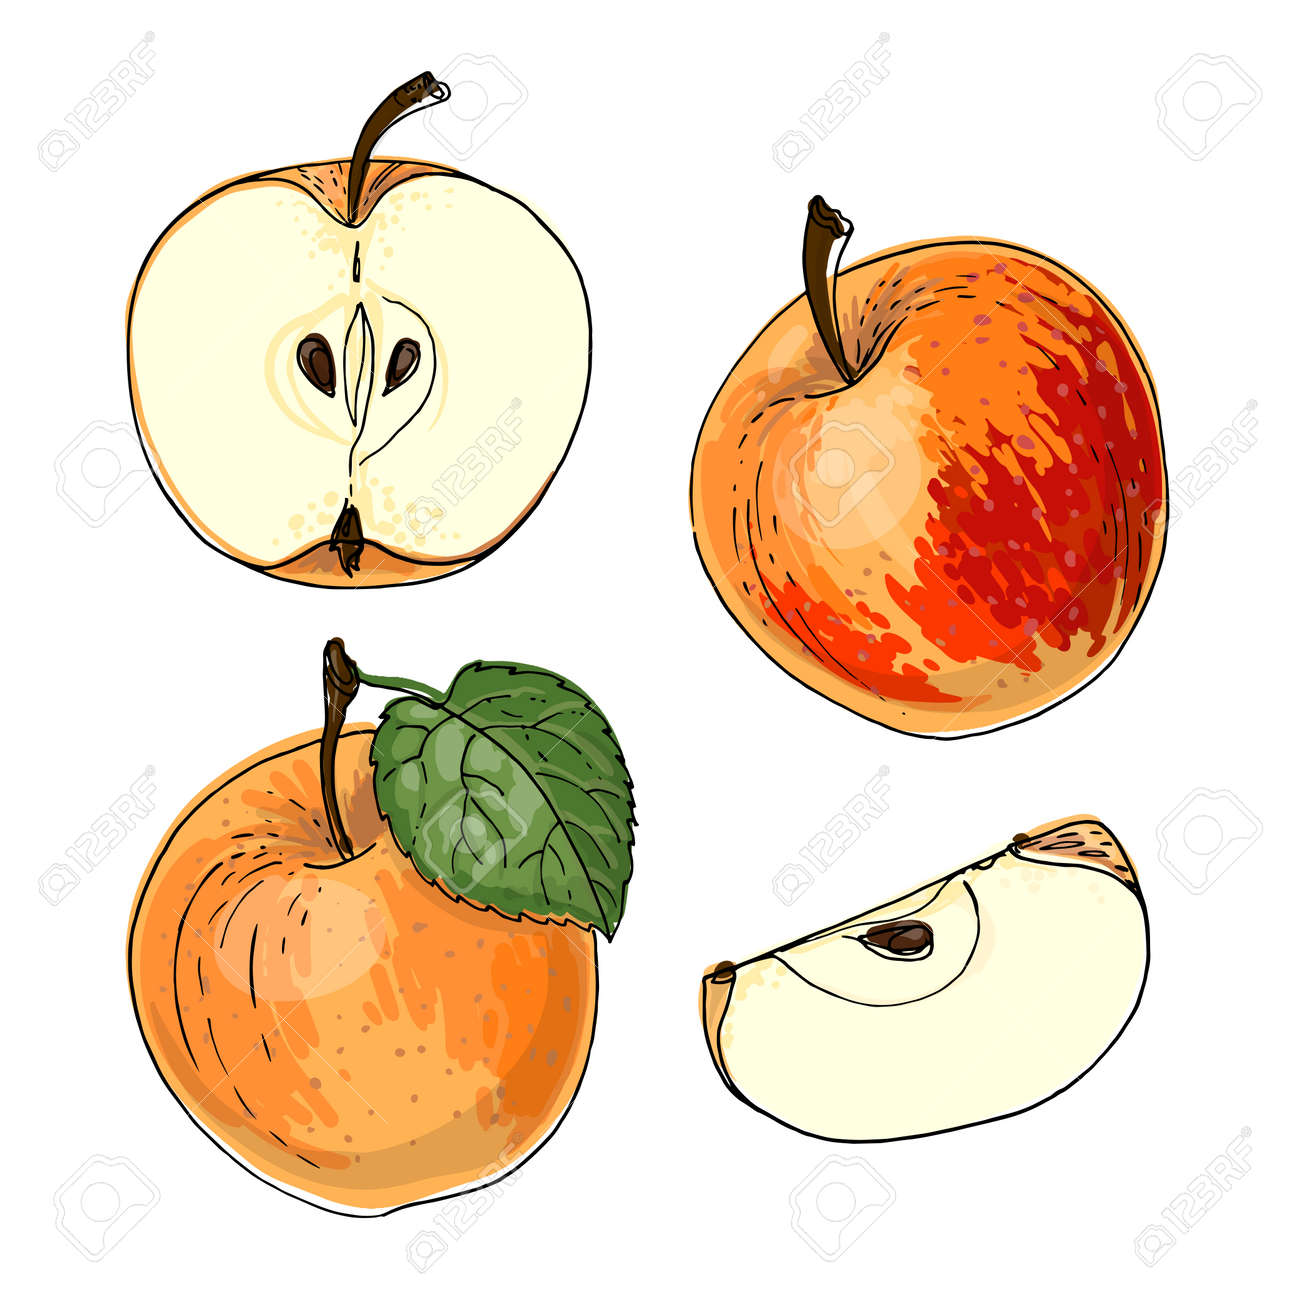 Apple red and orange. Vector food icons of fruits. Colored sketch of food products. - 170893631